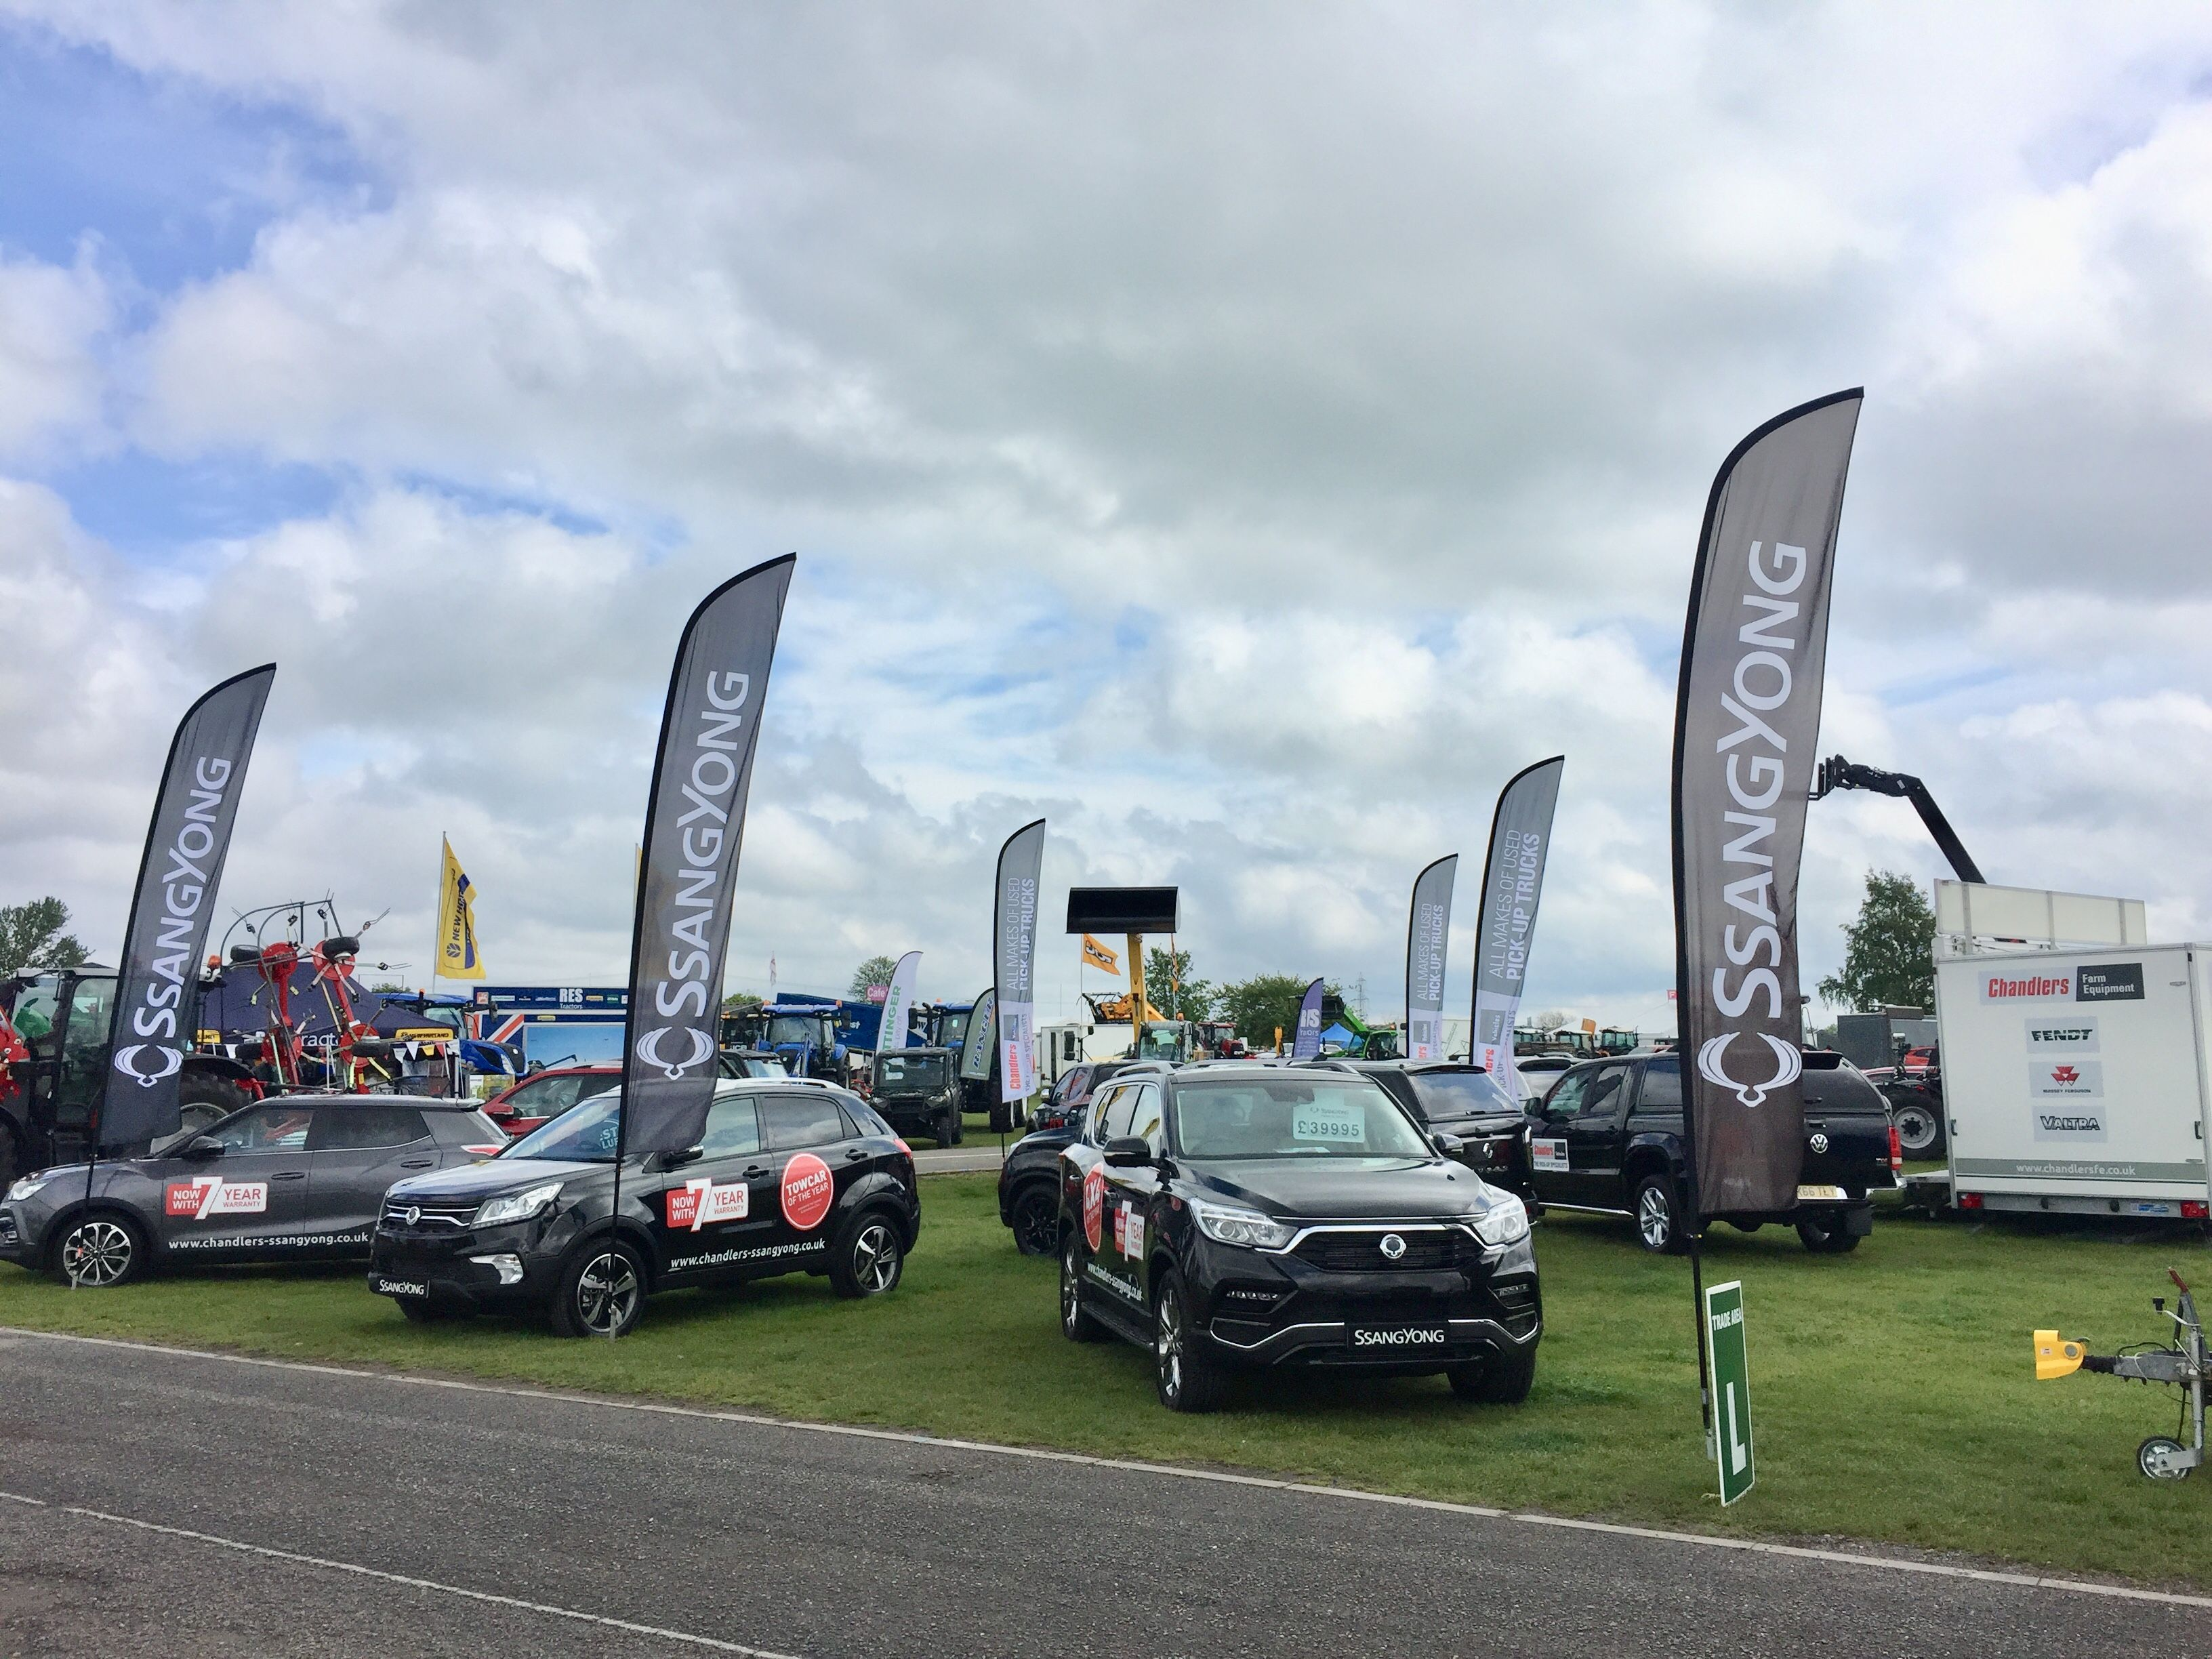 Chandlers SsangYong at the Nottingham County Show 11/12 May 2019